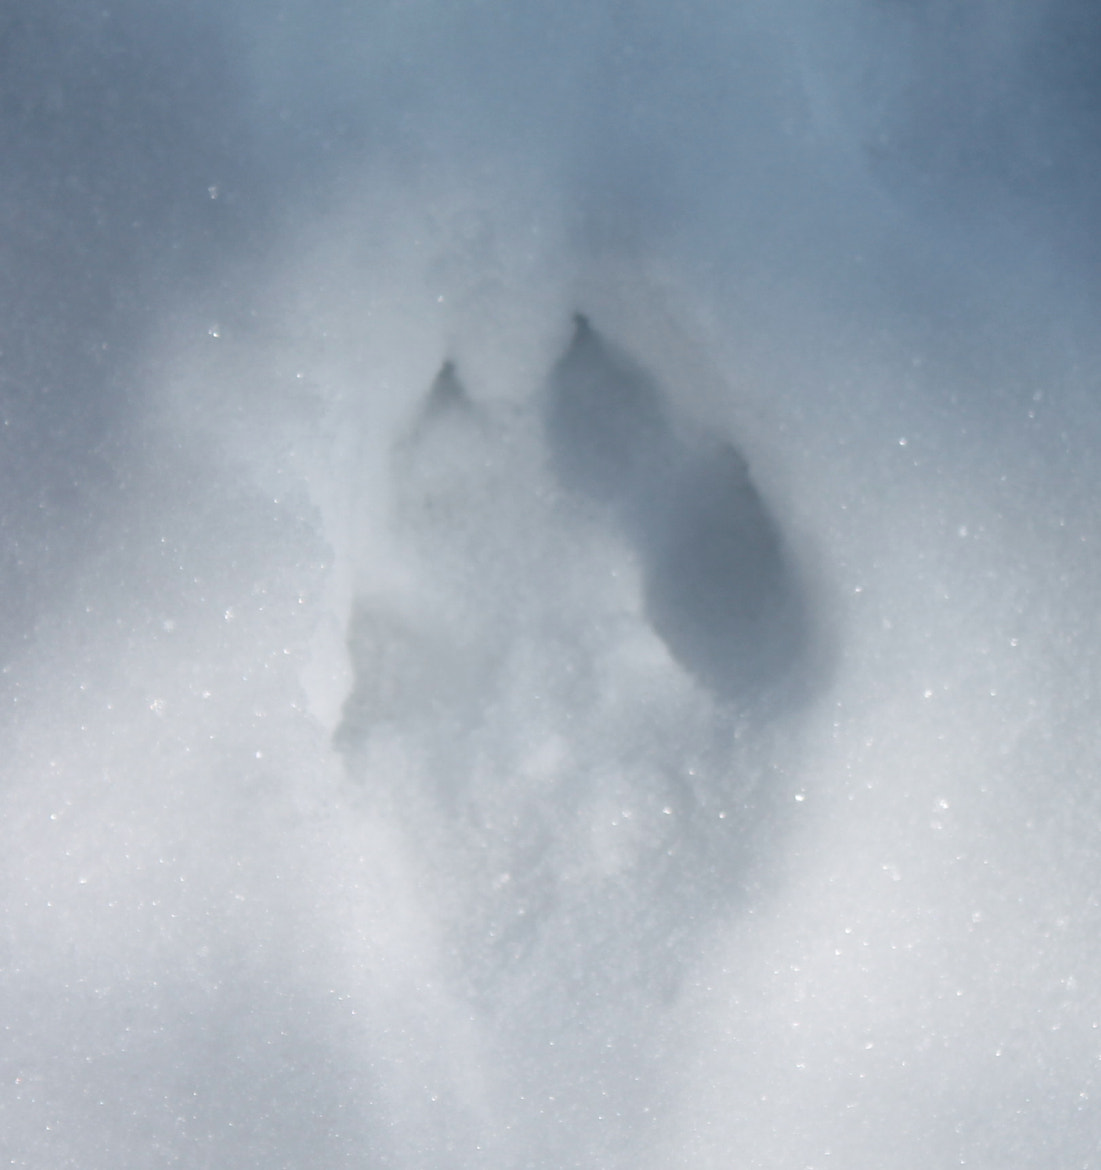 Photograph Paw print by Adelka Molcan on 500px